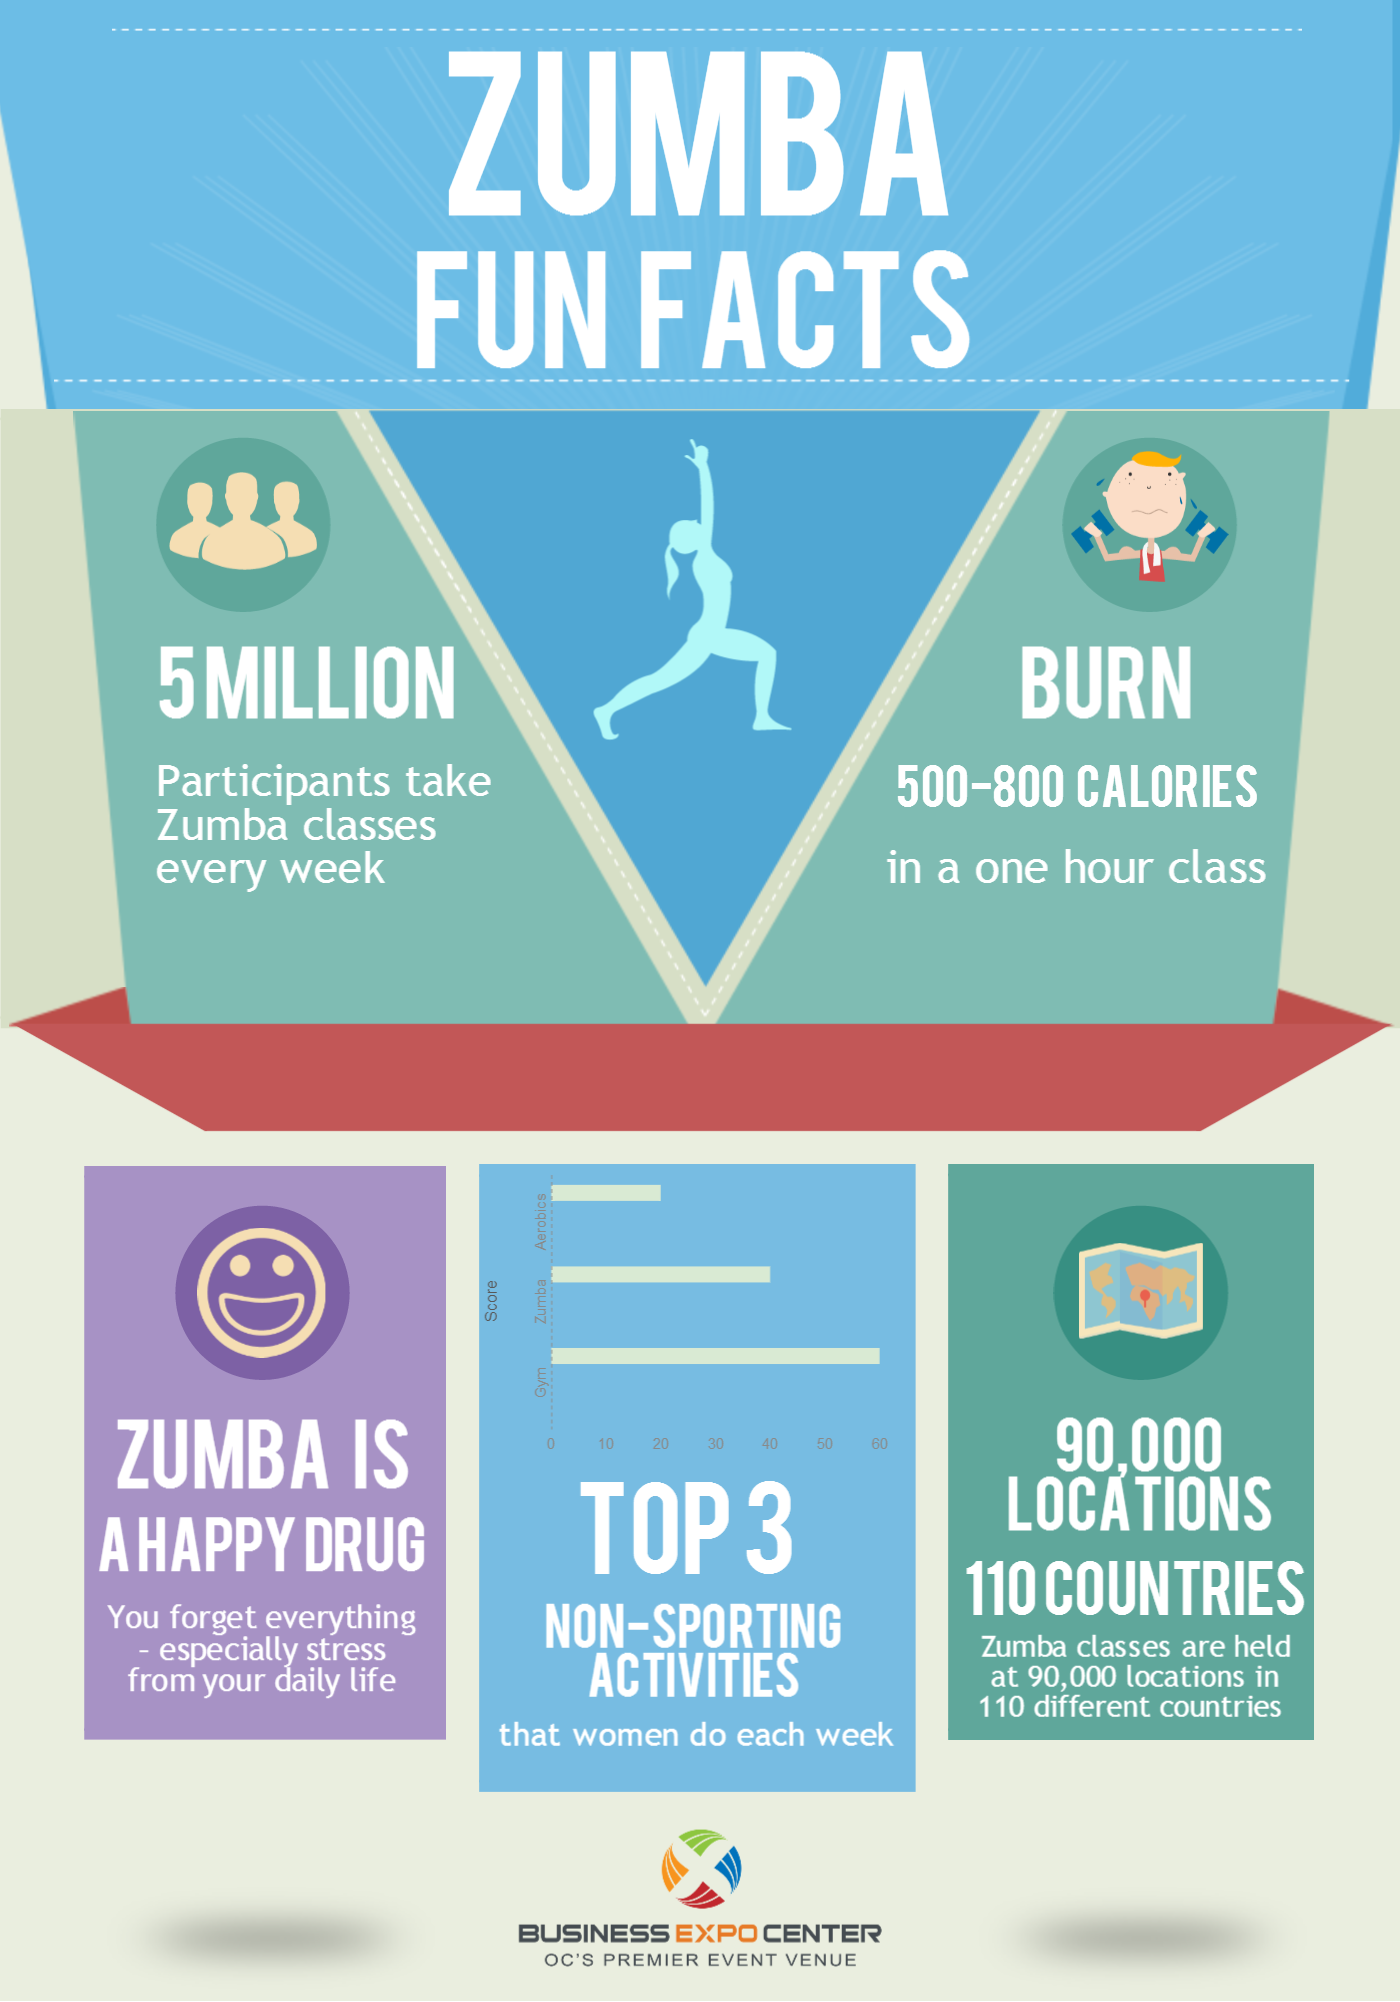 Interesting facts about zumba